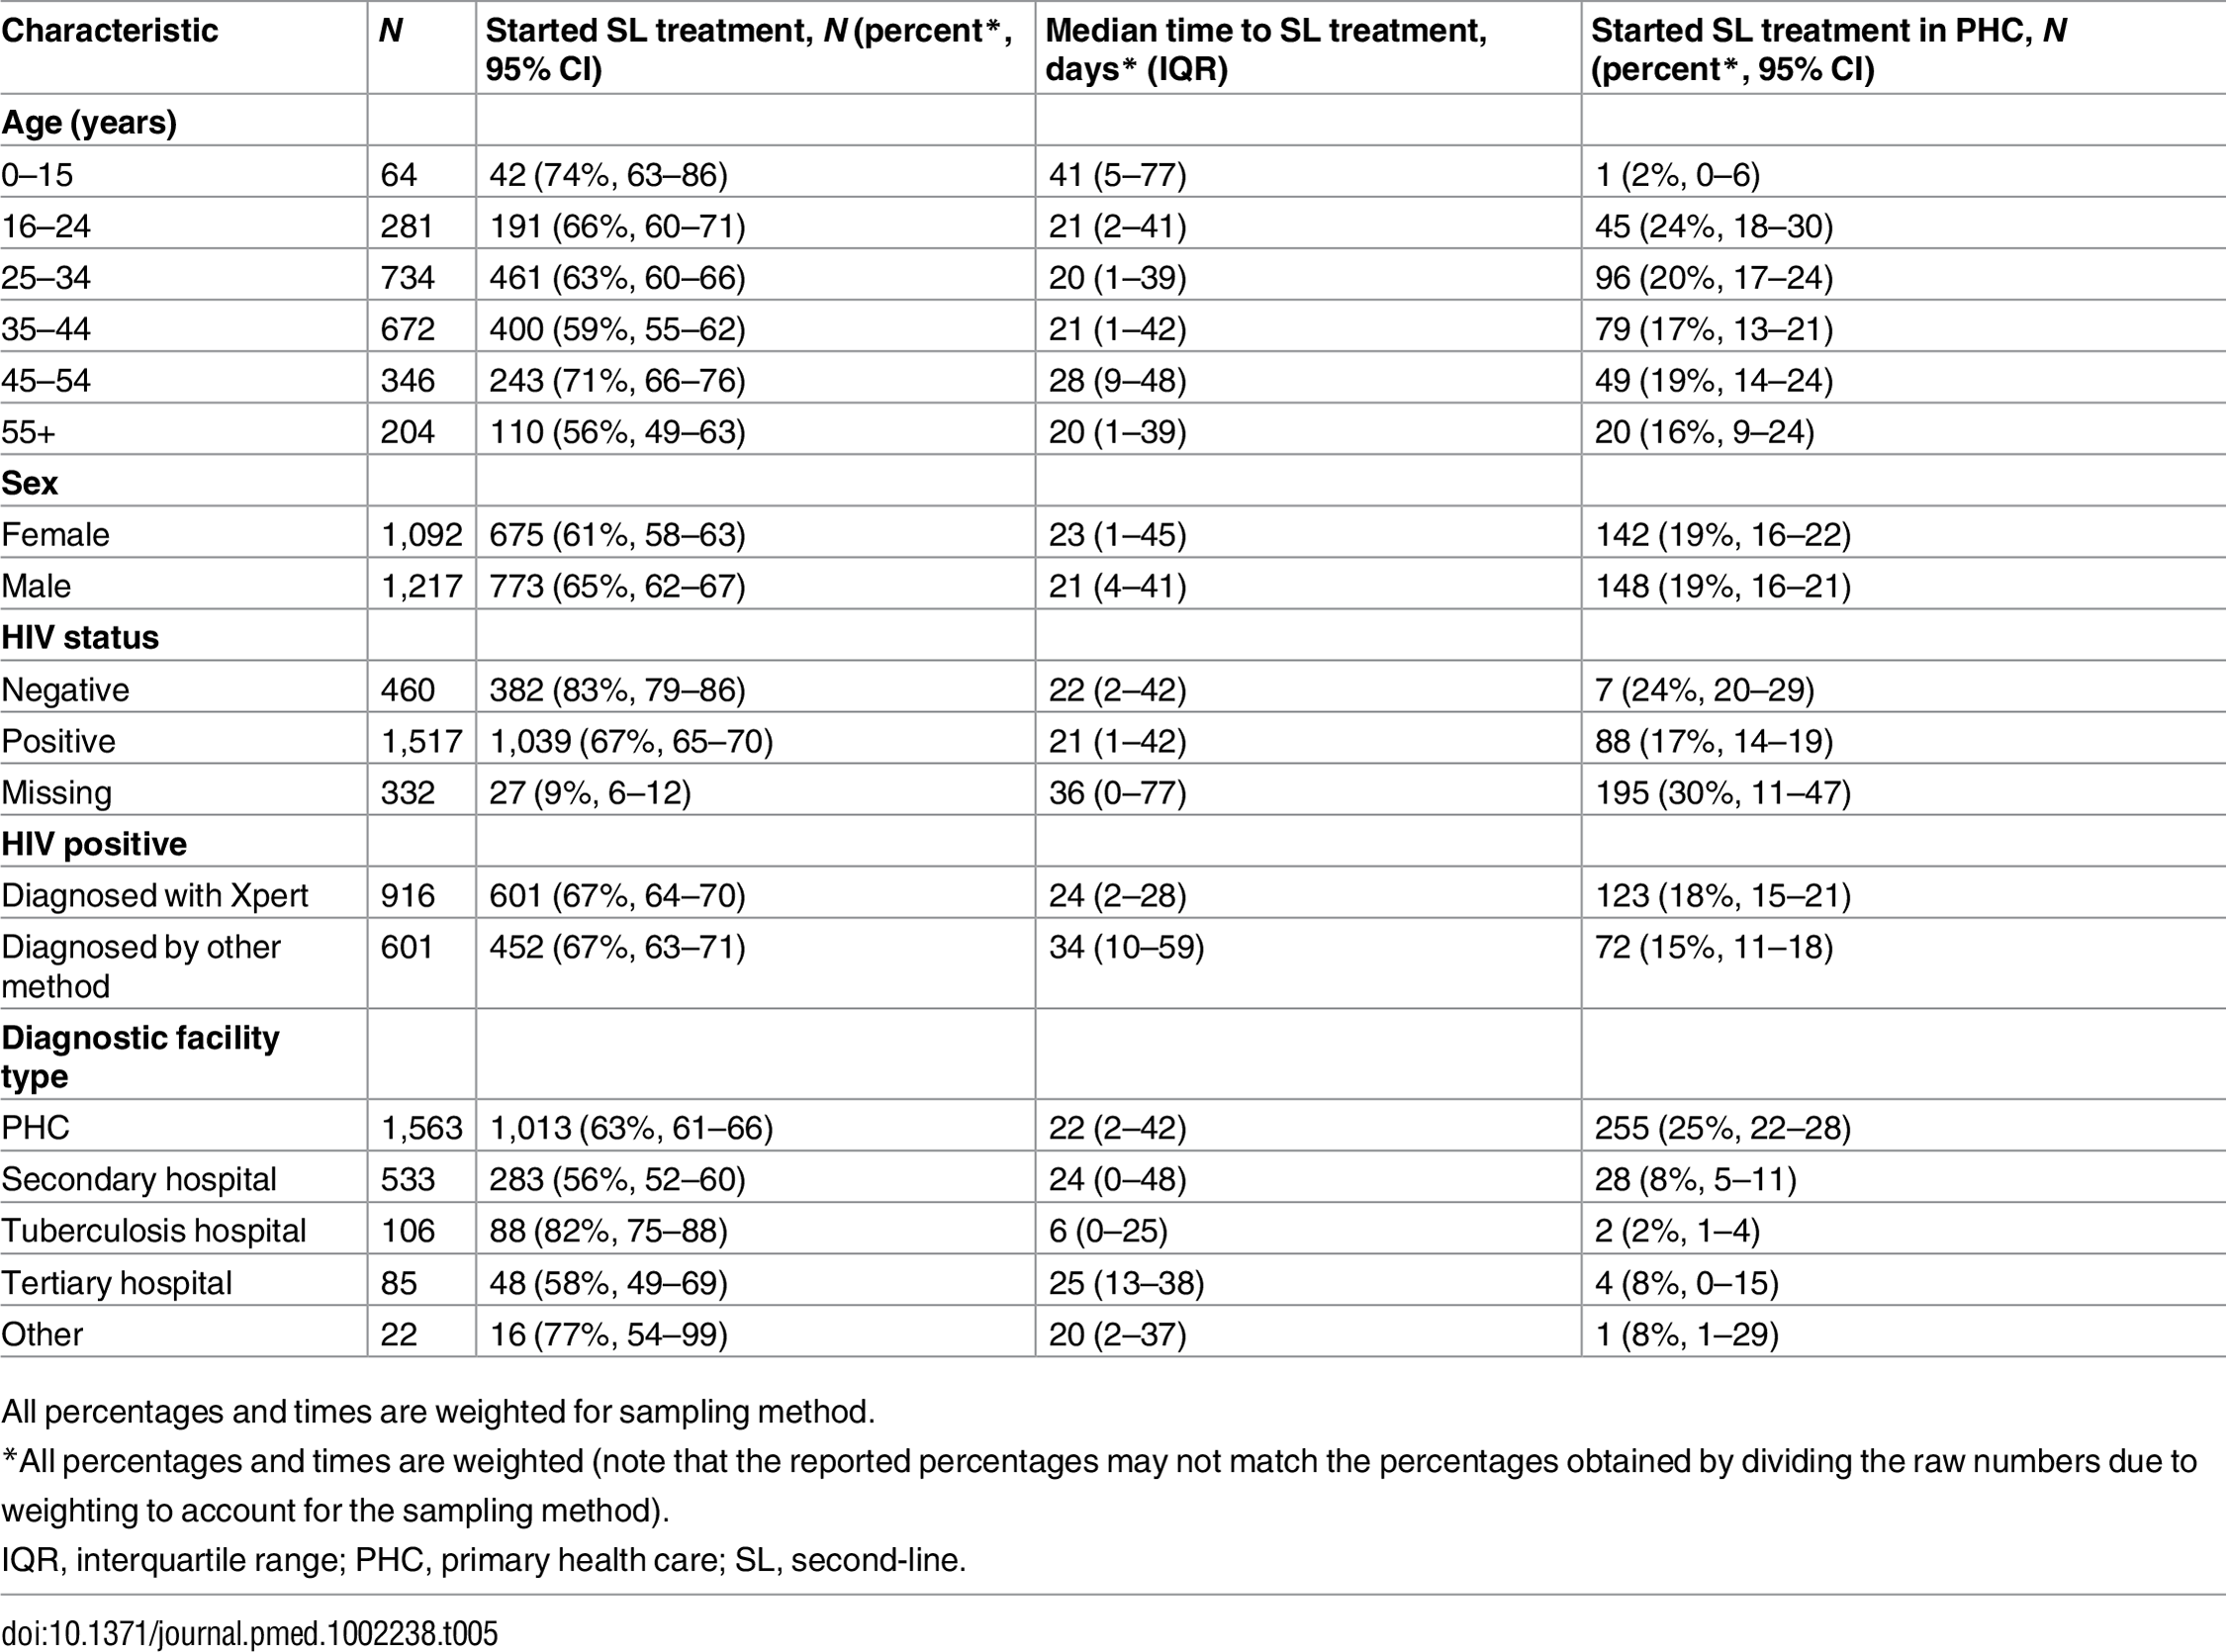 Second-line treatment initiation within 6 mo, time to treatment, and site of treatment initiation by age, sex, HIV status, diagnostic facility, and diagnostic test (new rifampicin-resistant tuberculosis patients, 2013 cohort).